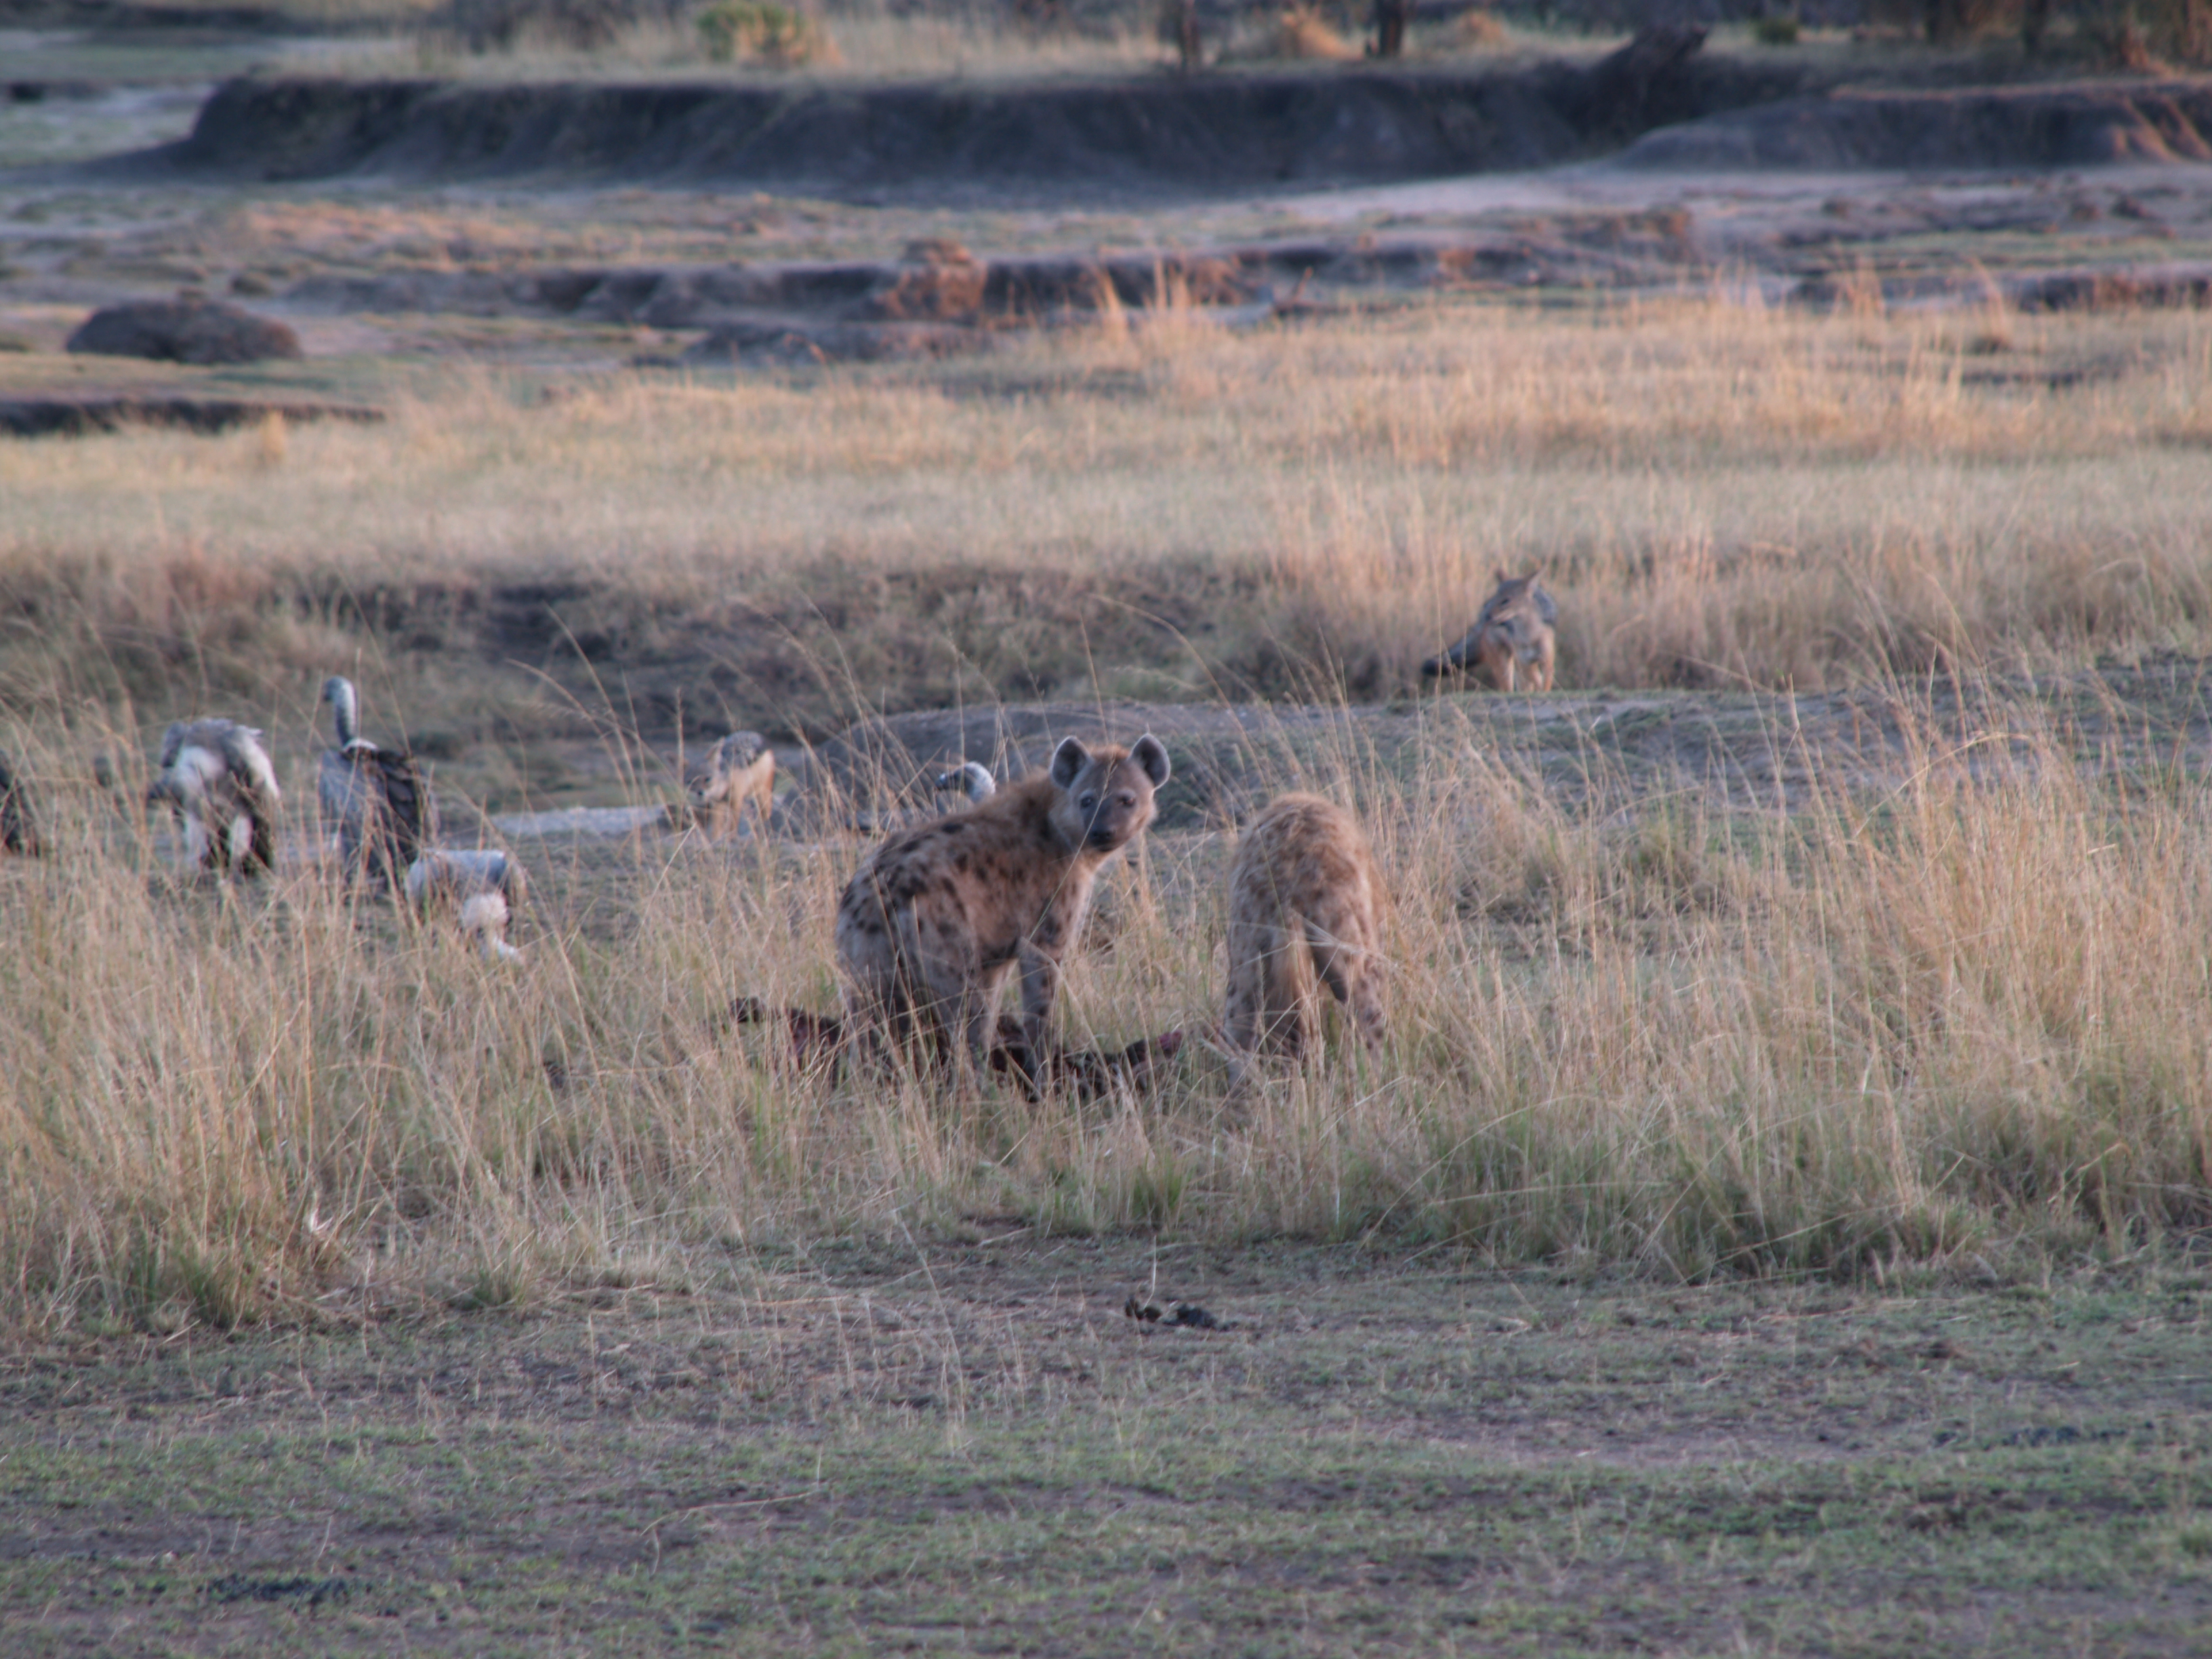 hyenas eating a kill, with vultures looking on and jackals in the background and